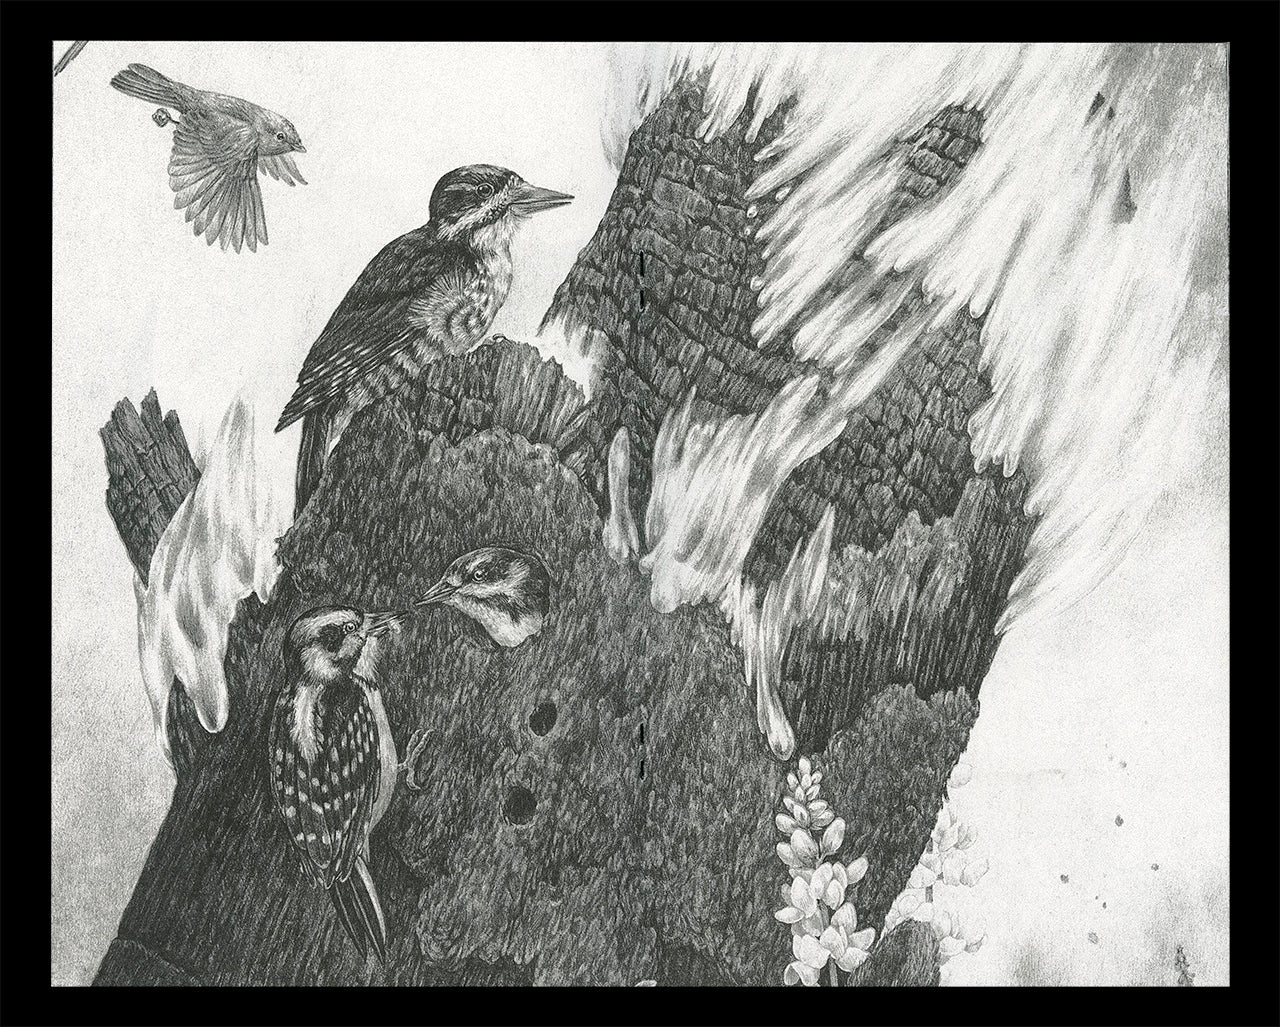 """Interior spread of Zoe Keller's zine """"Drawings"""" showing a graphite drawing of woodpeckers nesting in a tree"""